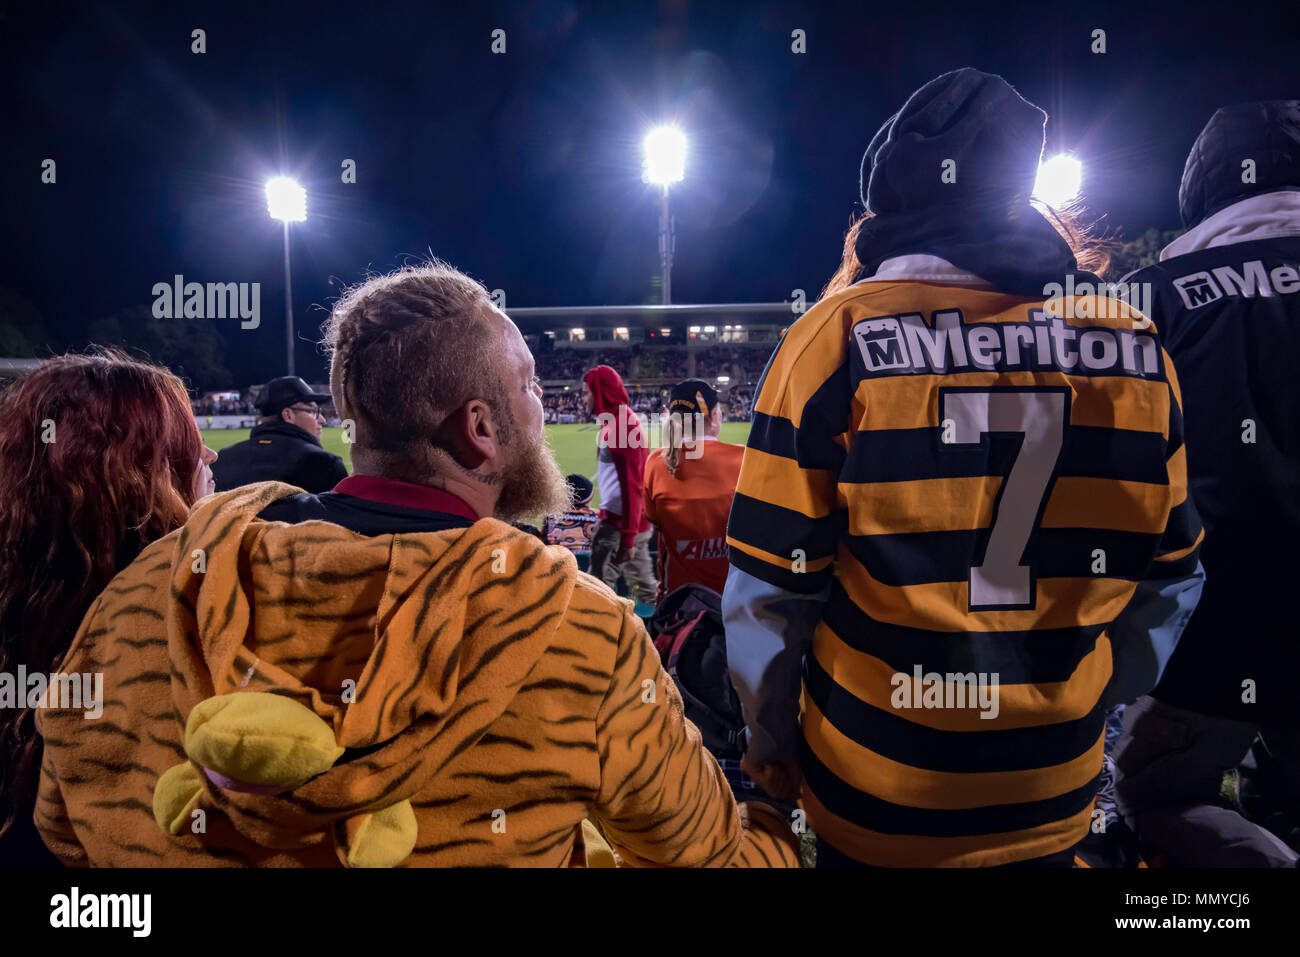 Rugby League supporters at the Sydney based Wests Tigers v North Queensland Cowboys game at Sydney's Leichhardt Oval on May 10th, 2018 in Australia Stock Photo